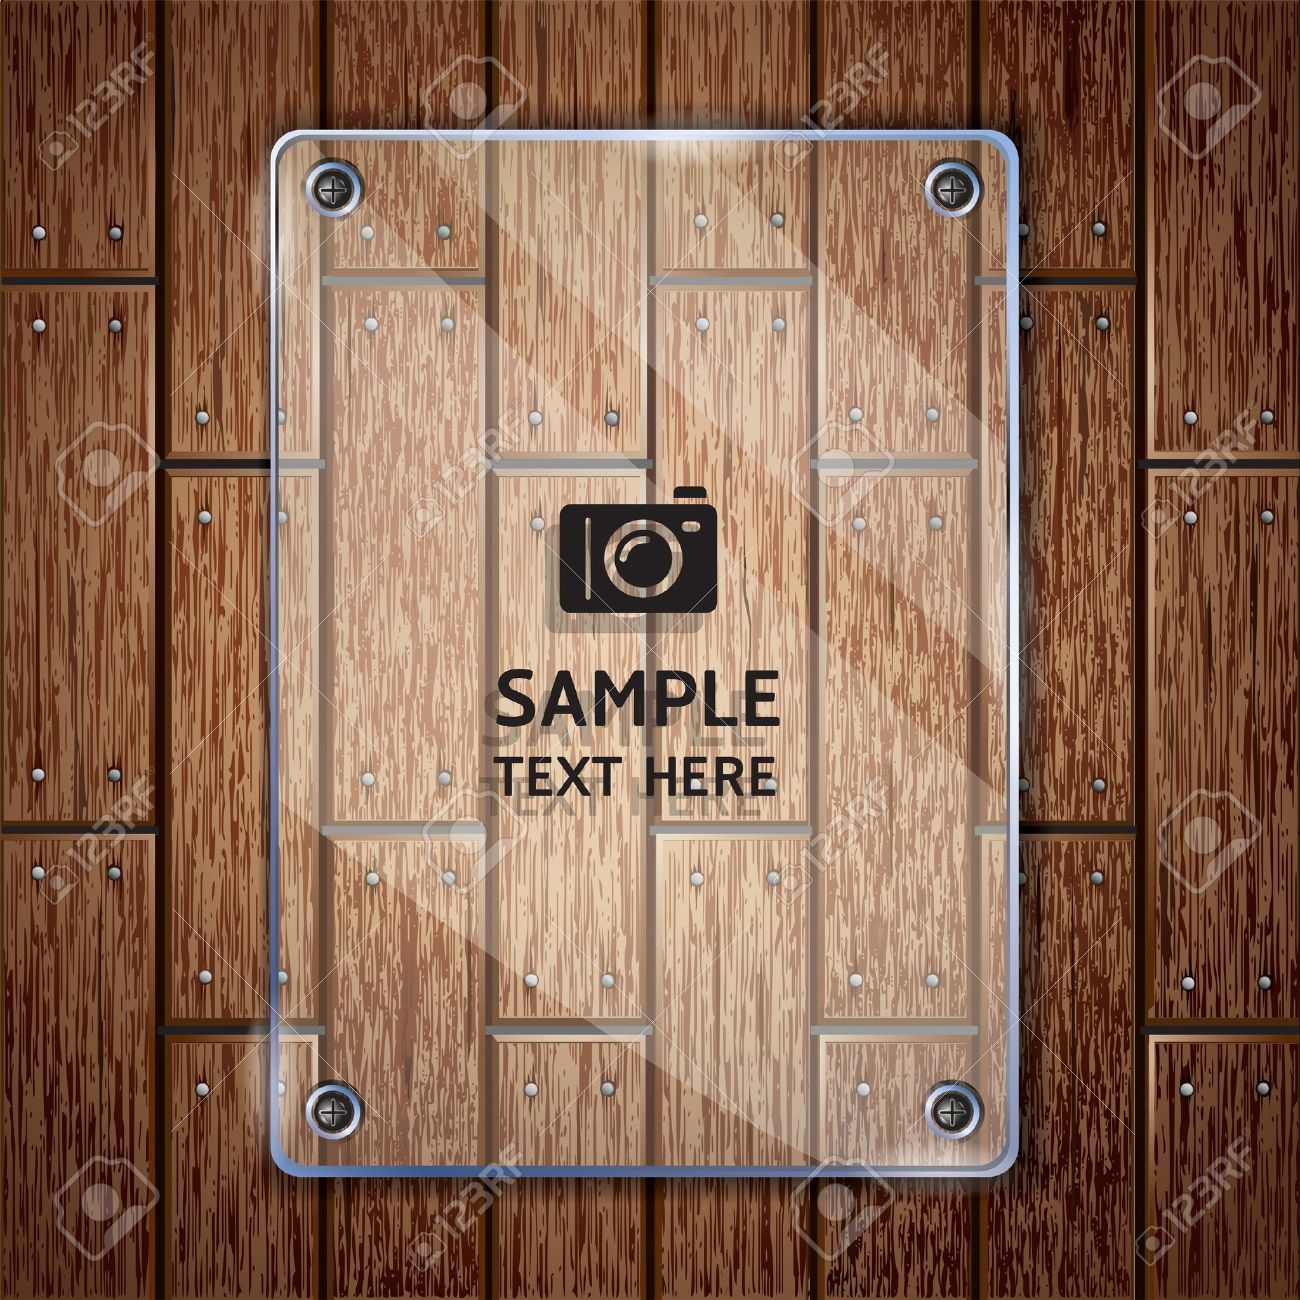 Wooden texture background and glass frame vector illustrator